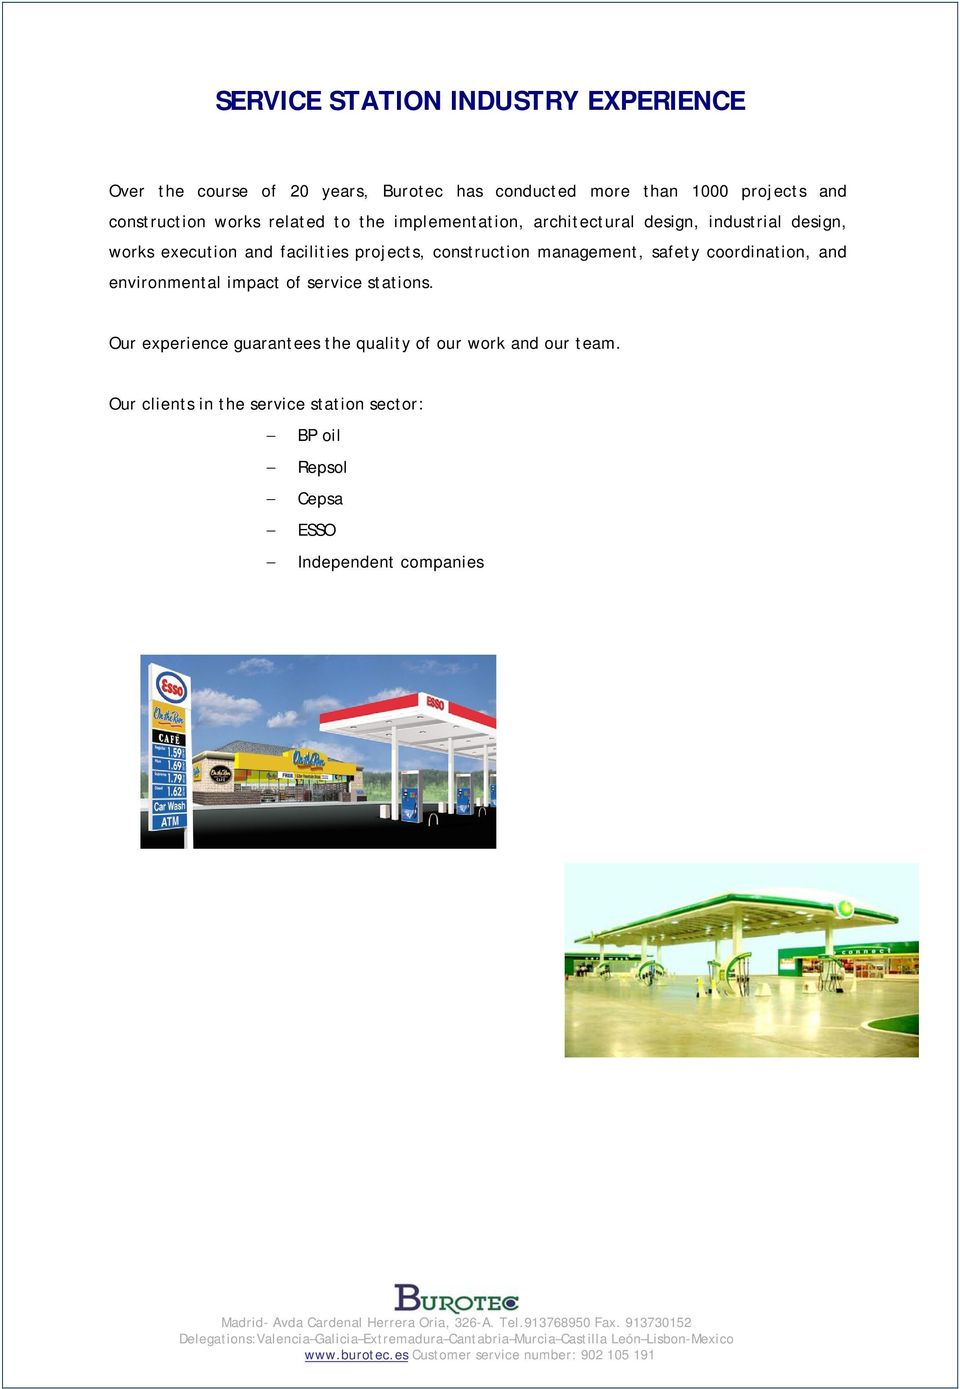 projects, construction management, safety coordination, and environmental impact of service stations.